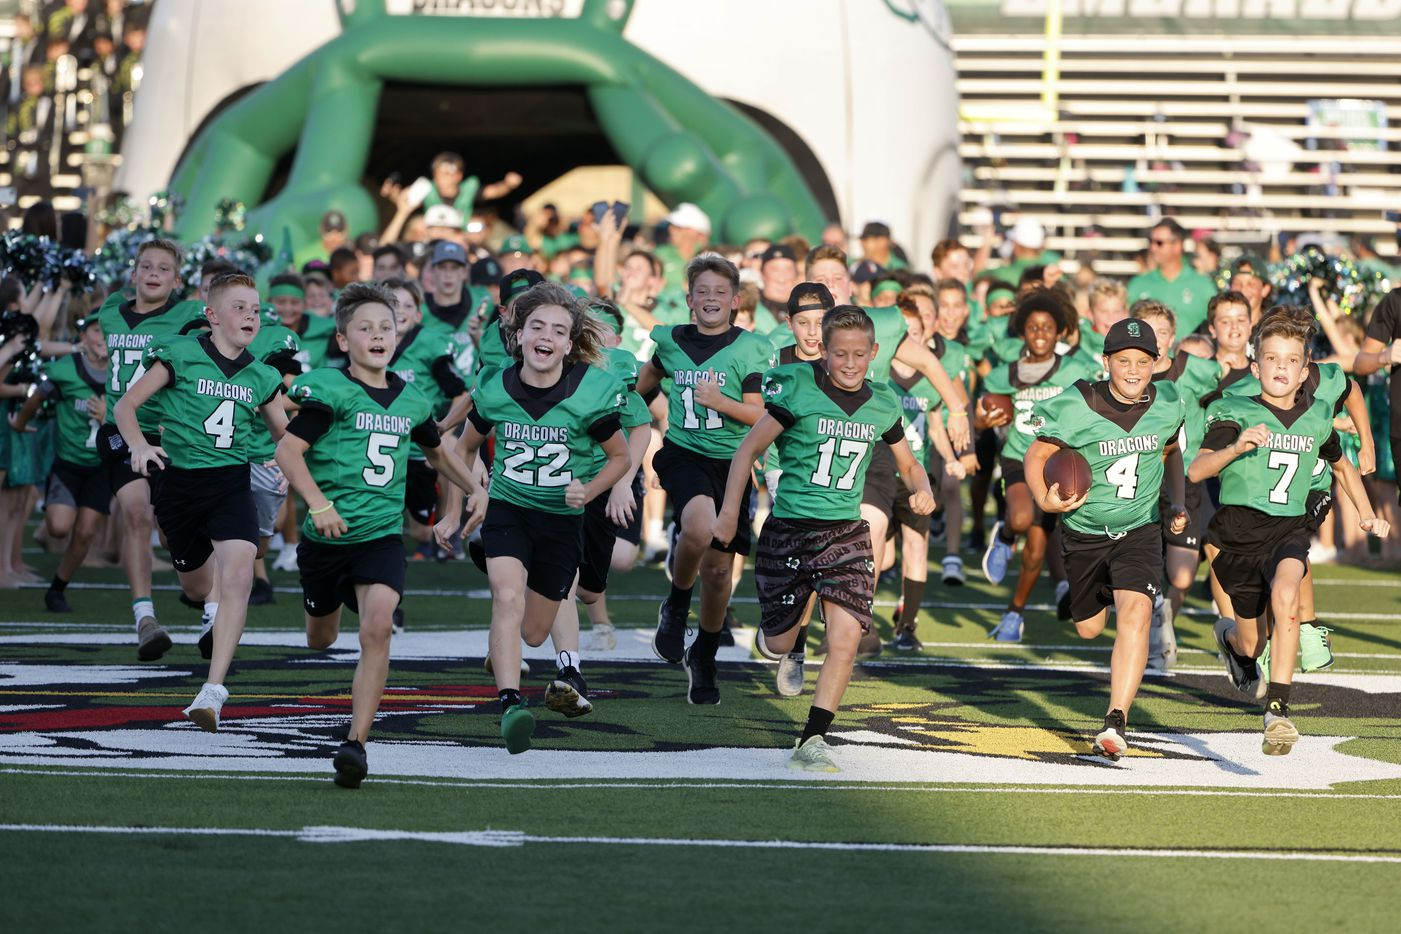 Southlake Youth Football players run onto the field prior to Southlake playing Arlington Martin during a high school football game in Southlake, Texas on Friday, Sept. 17, 2021. (Michael Ainsworth/Special Contributor)